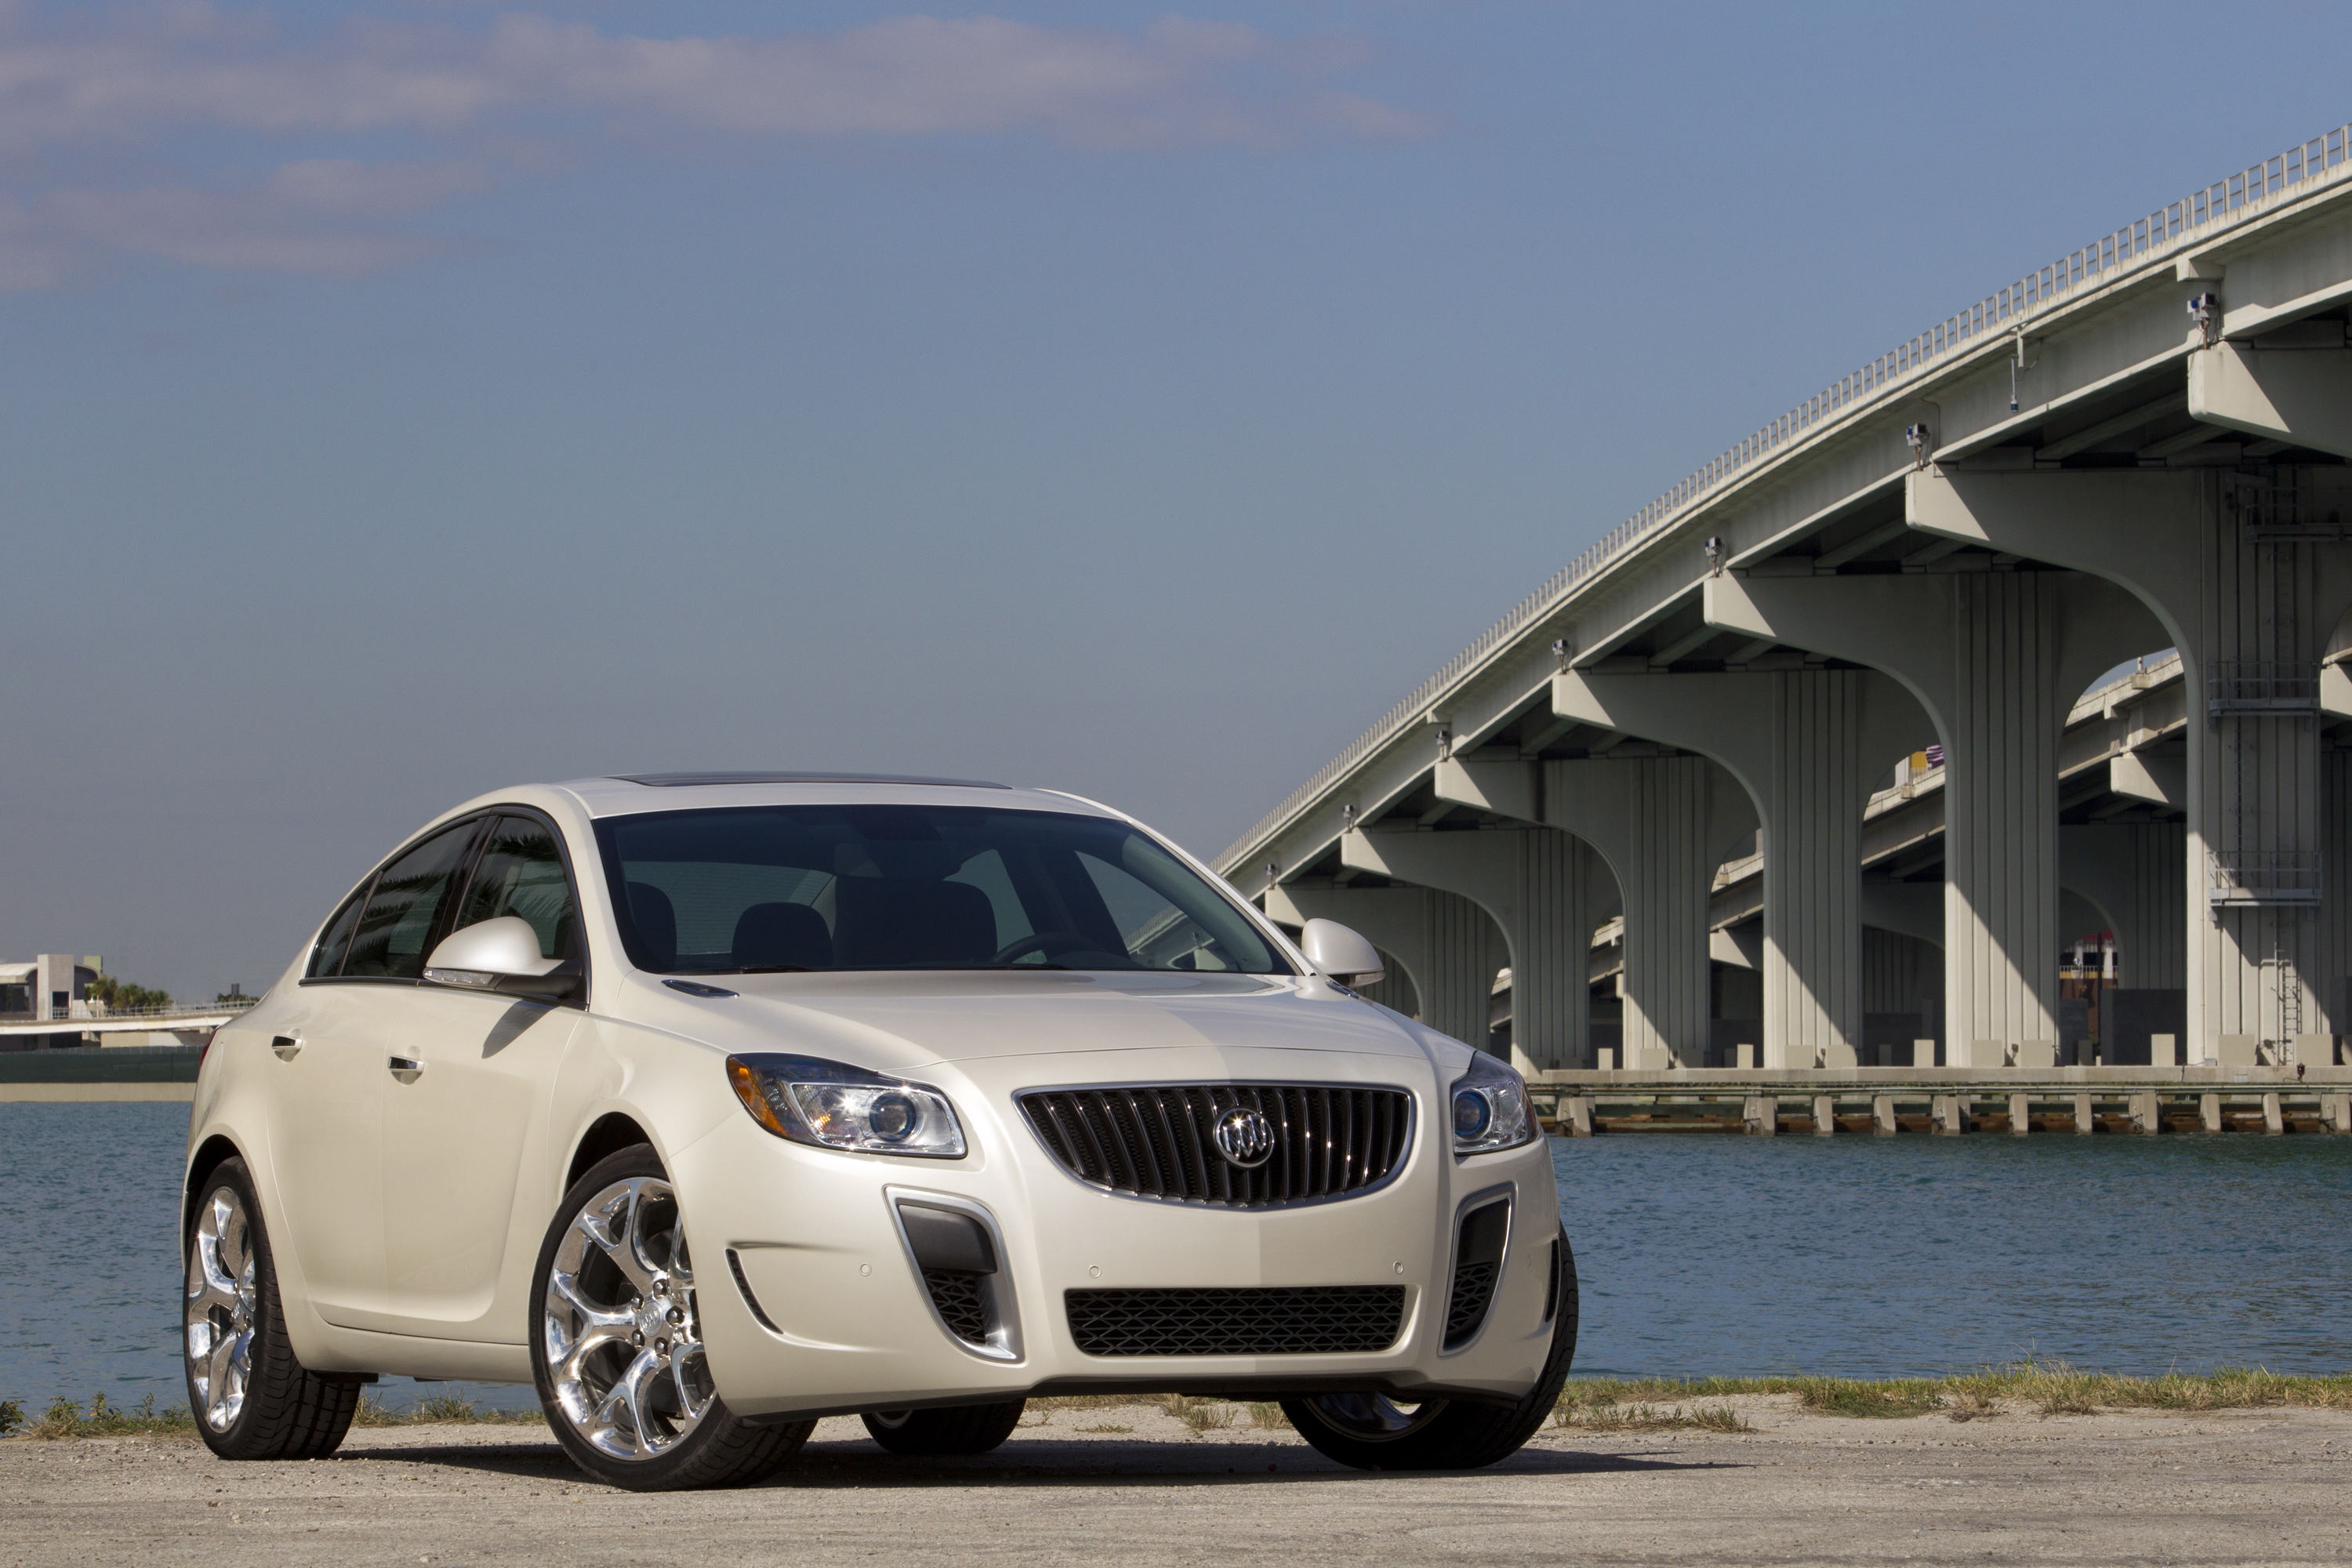 Buick Regal: Power Outlets